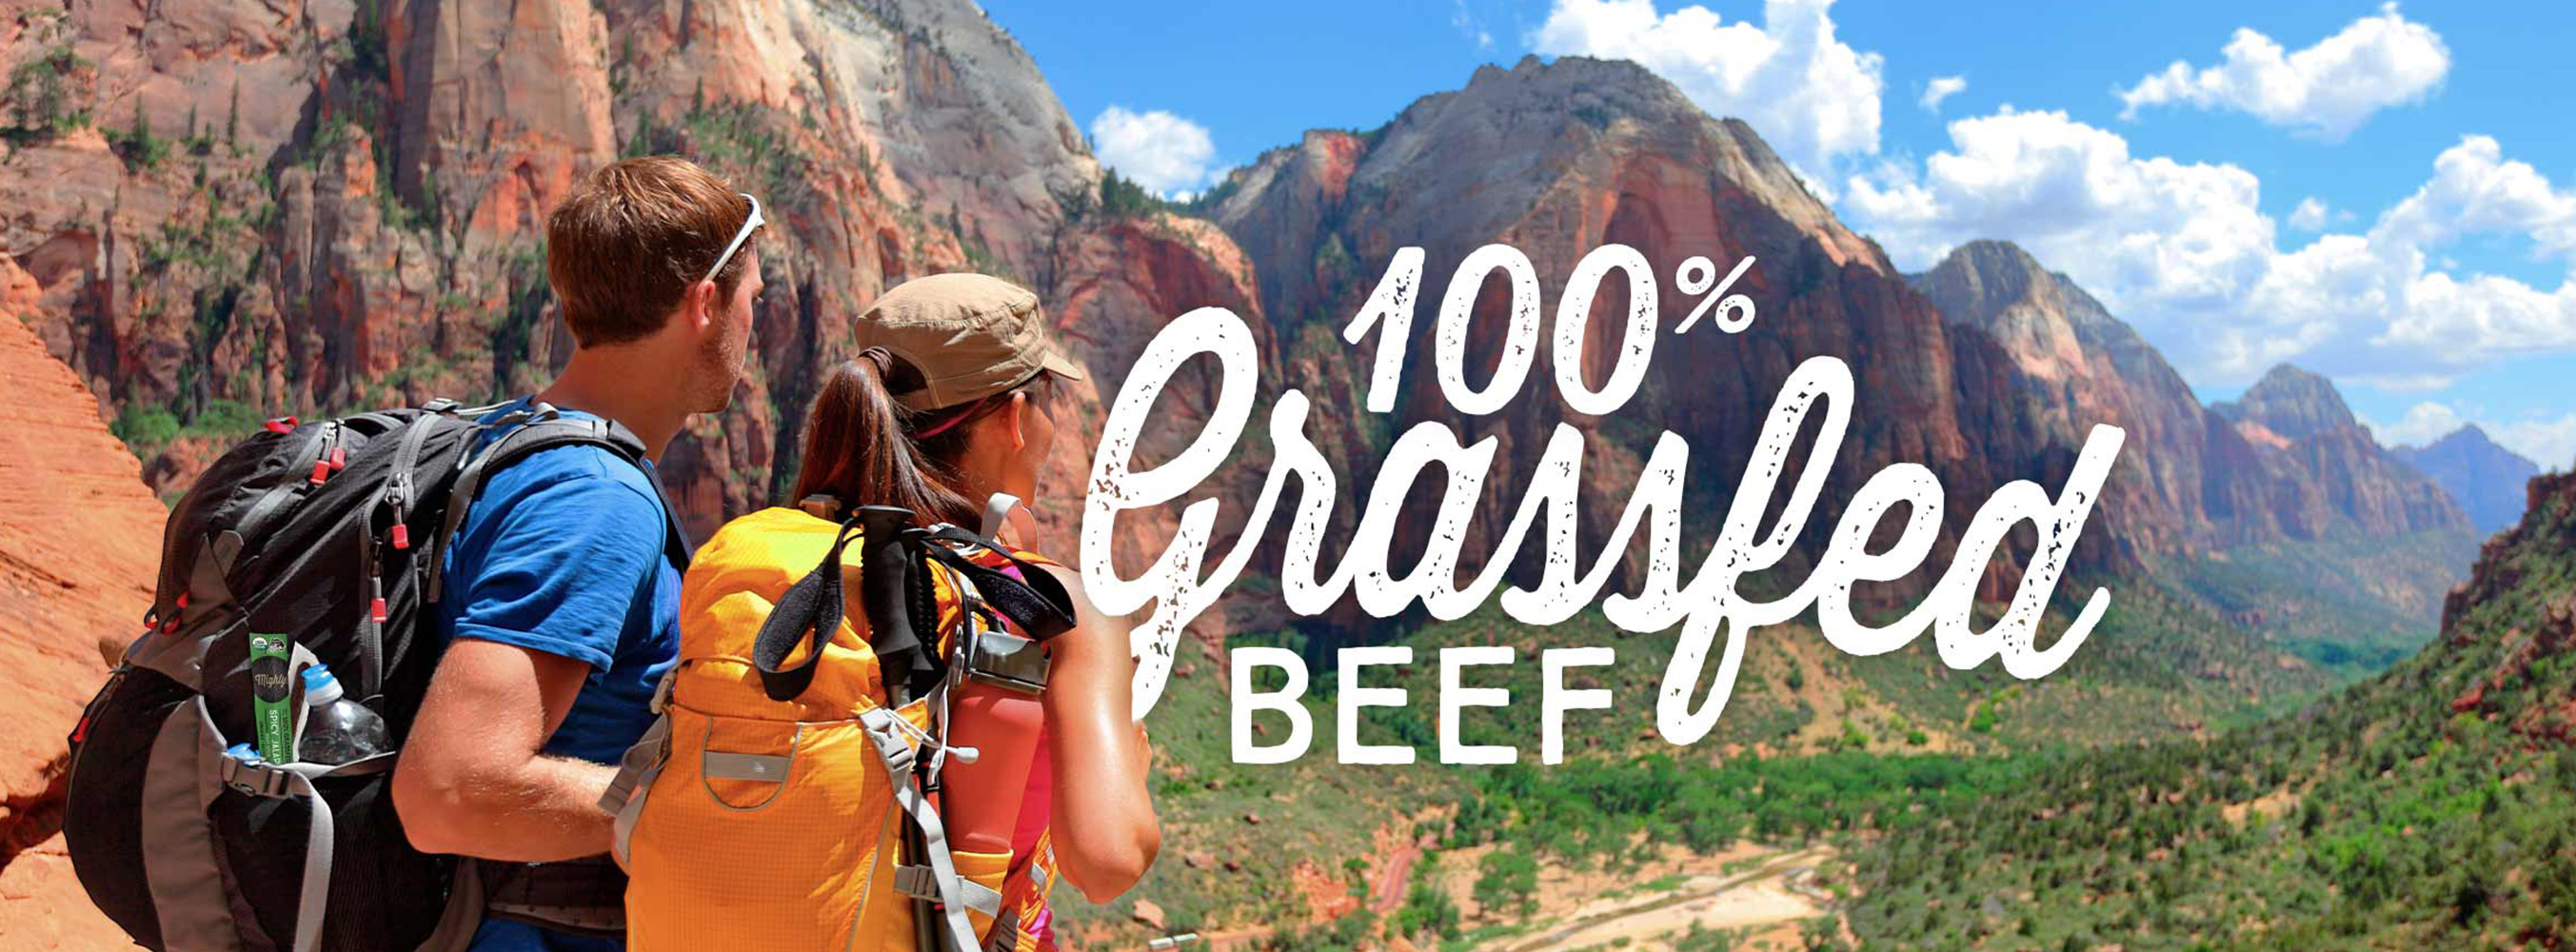 Mighty Organic Pioneers First Organic, 100% Grassfed Beef Snack Stick